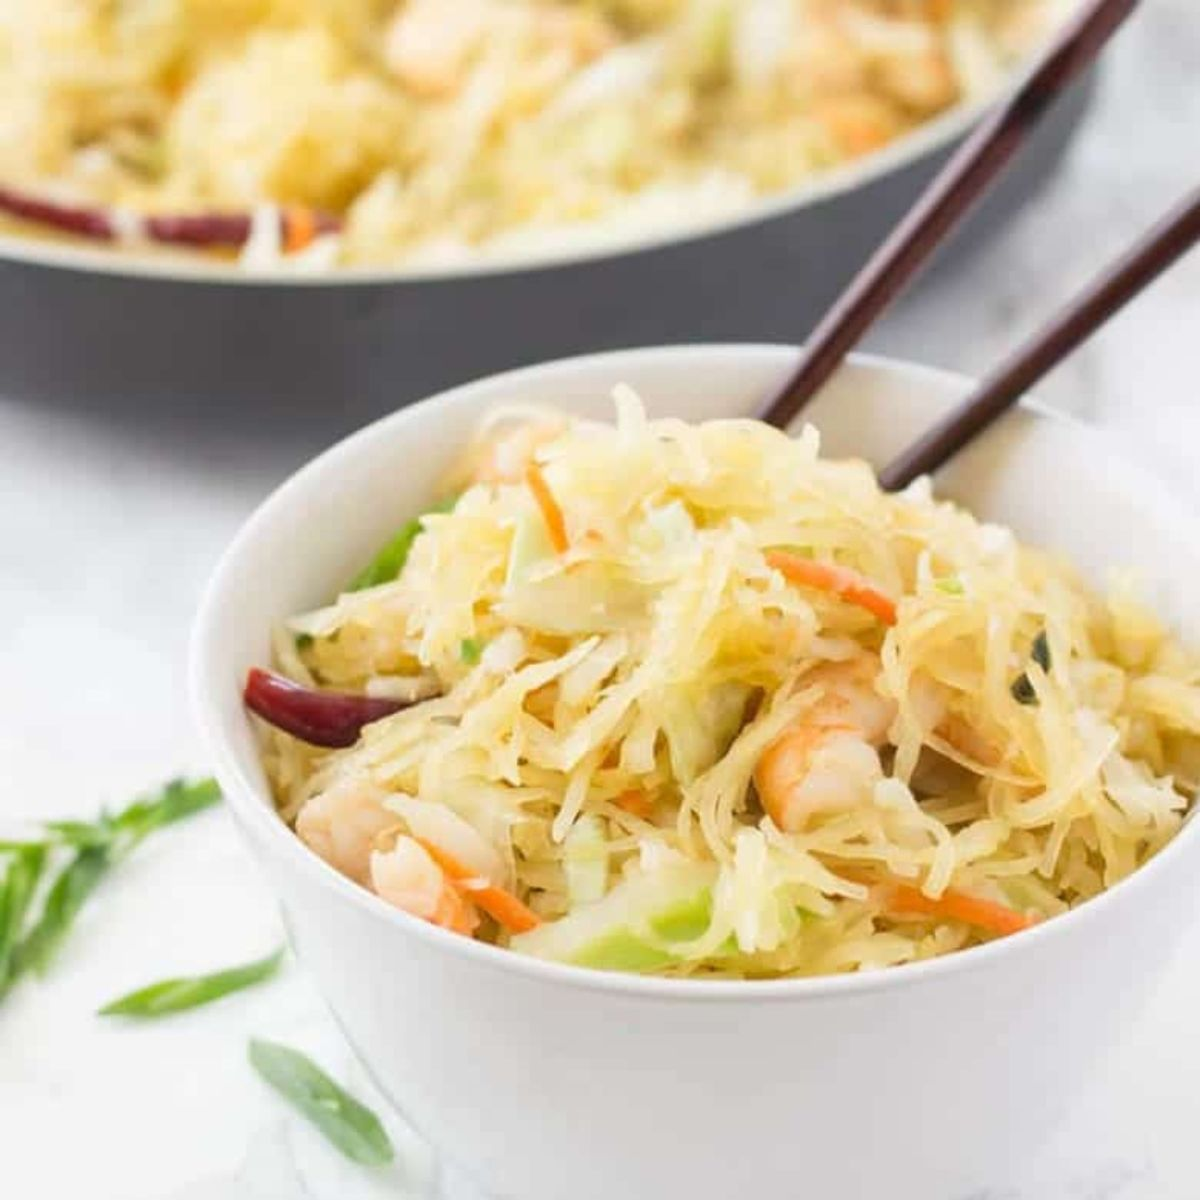 White bowl filled with noodles, shrimp and vegetables. Chopsticks are stickign out of the bowl